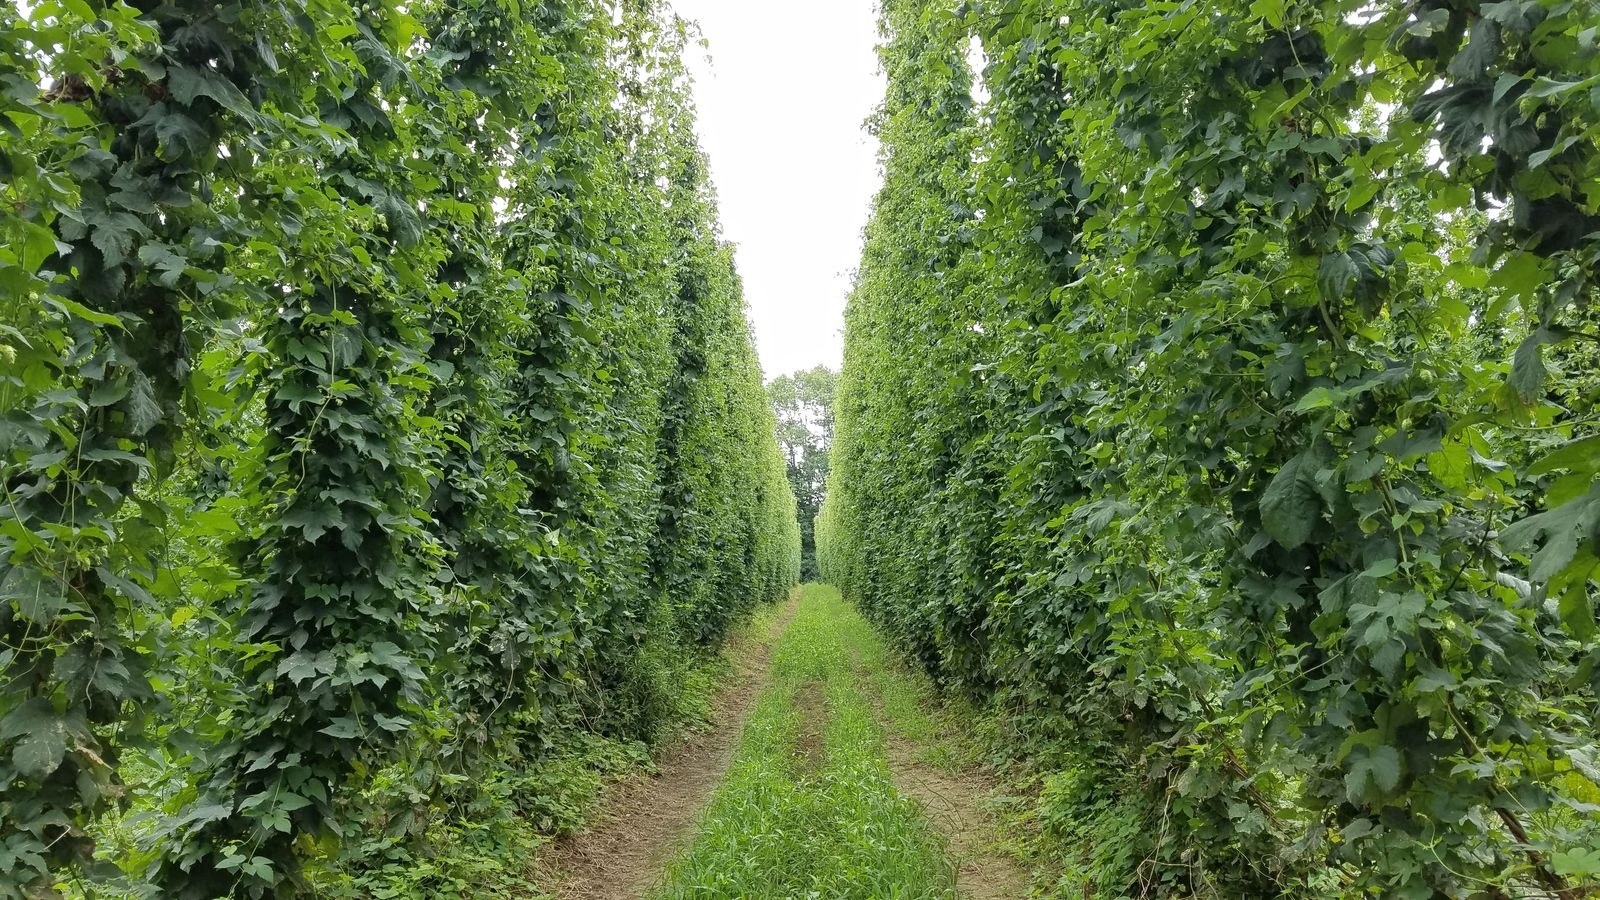 Rows of hop plants at The Hop Yard. (WGME)